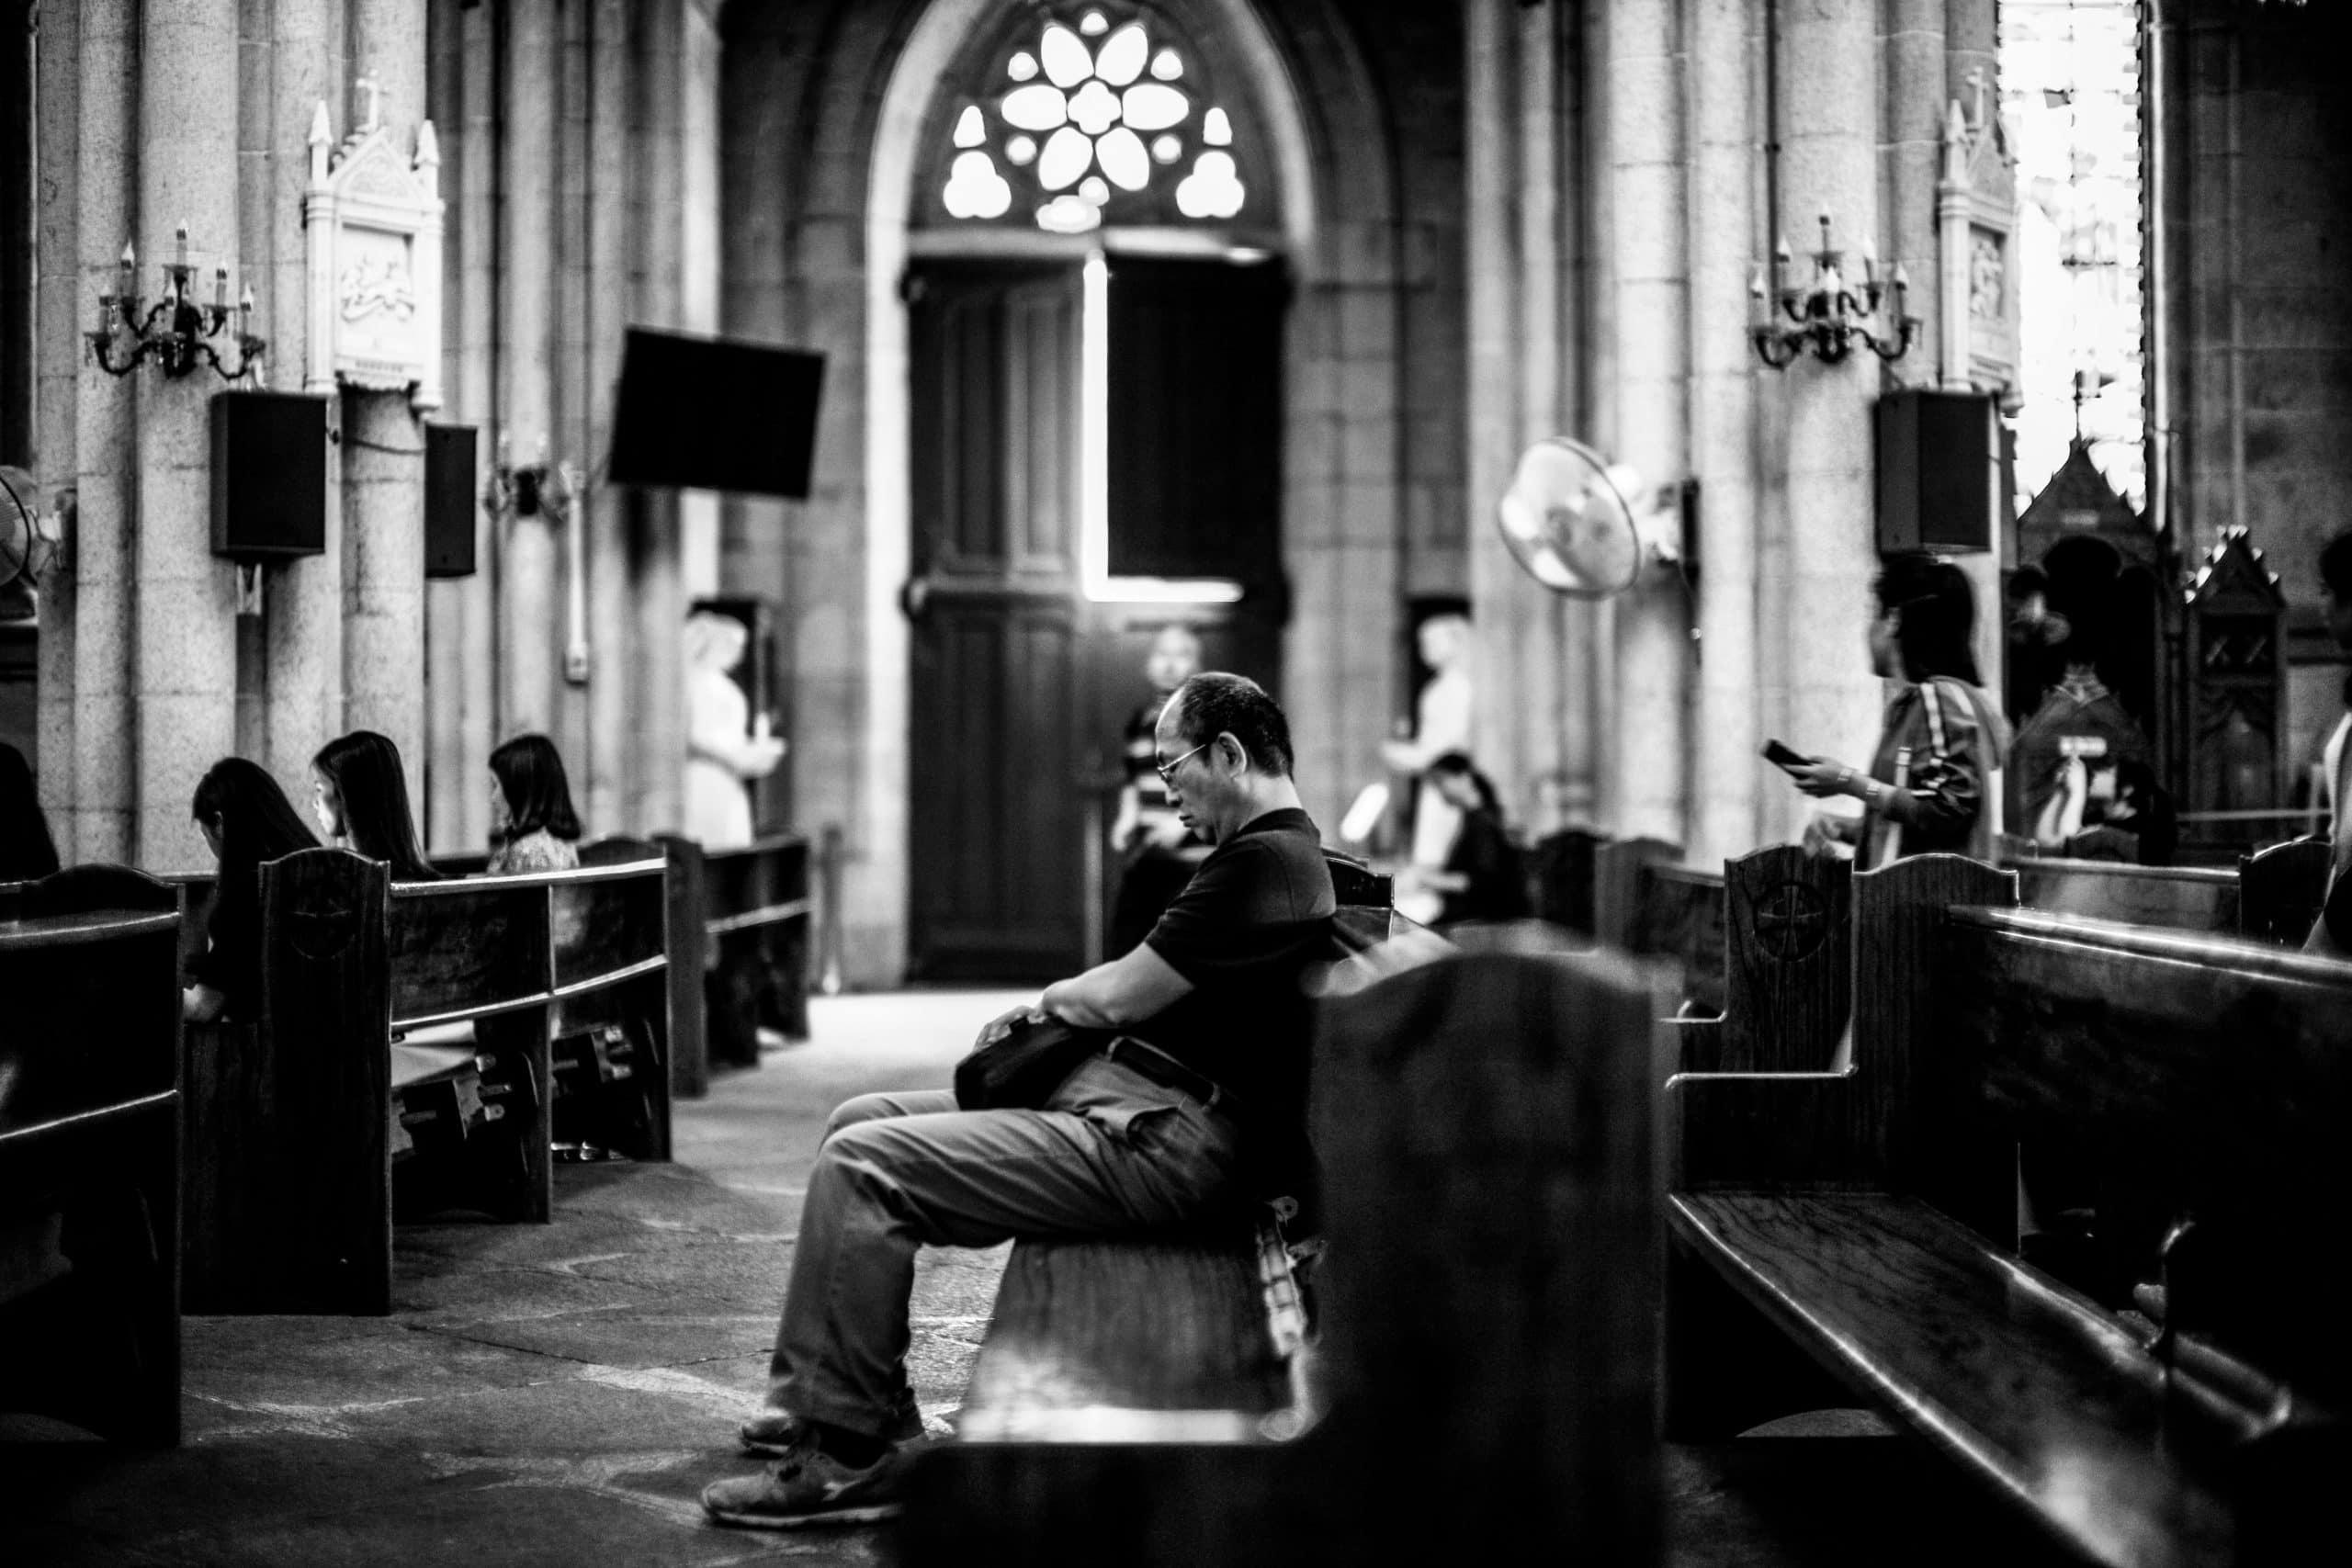 Socially distanced church attendees sit quietly